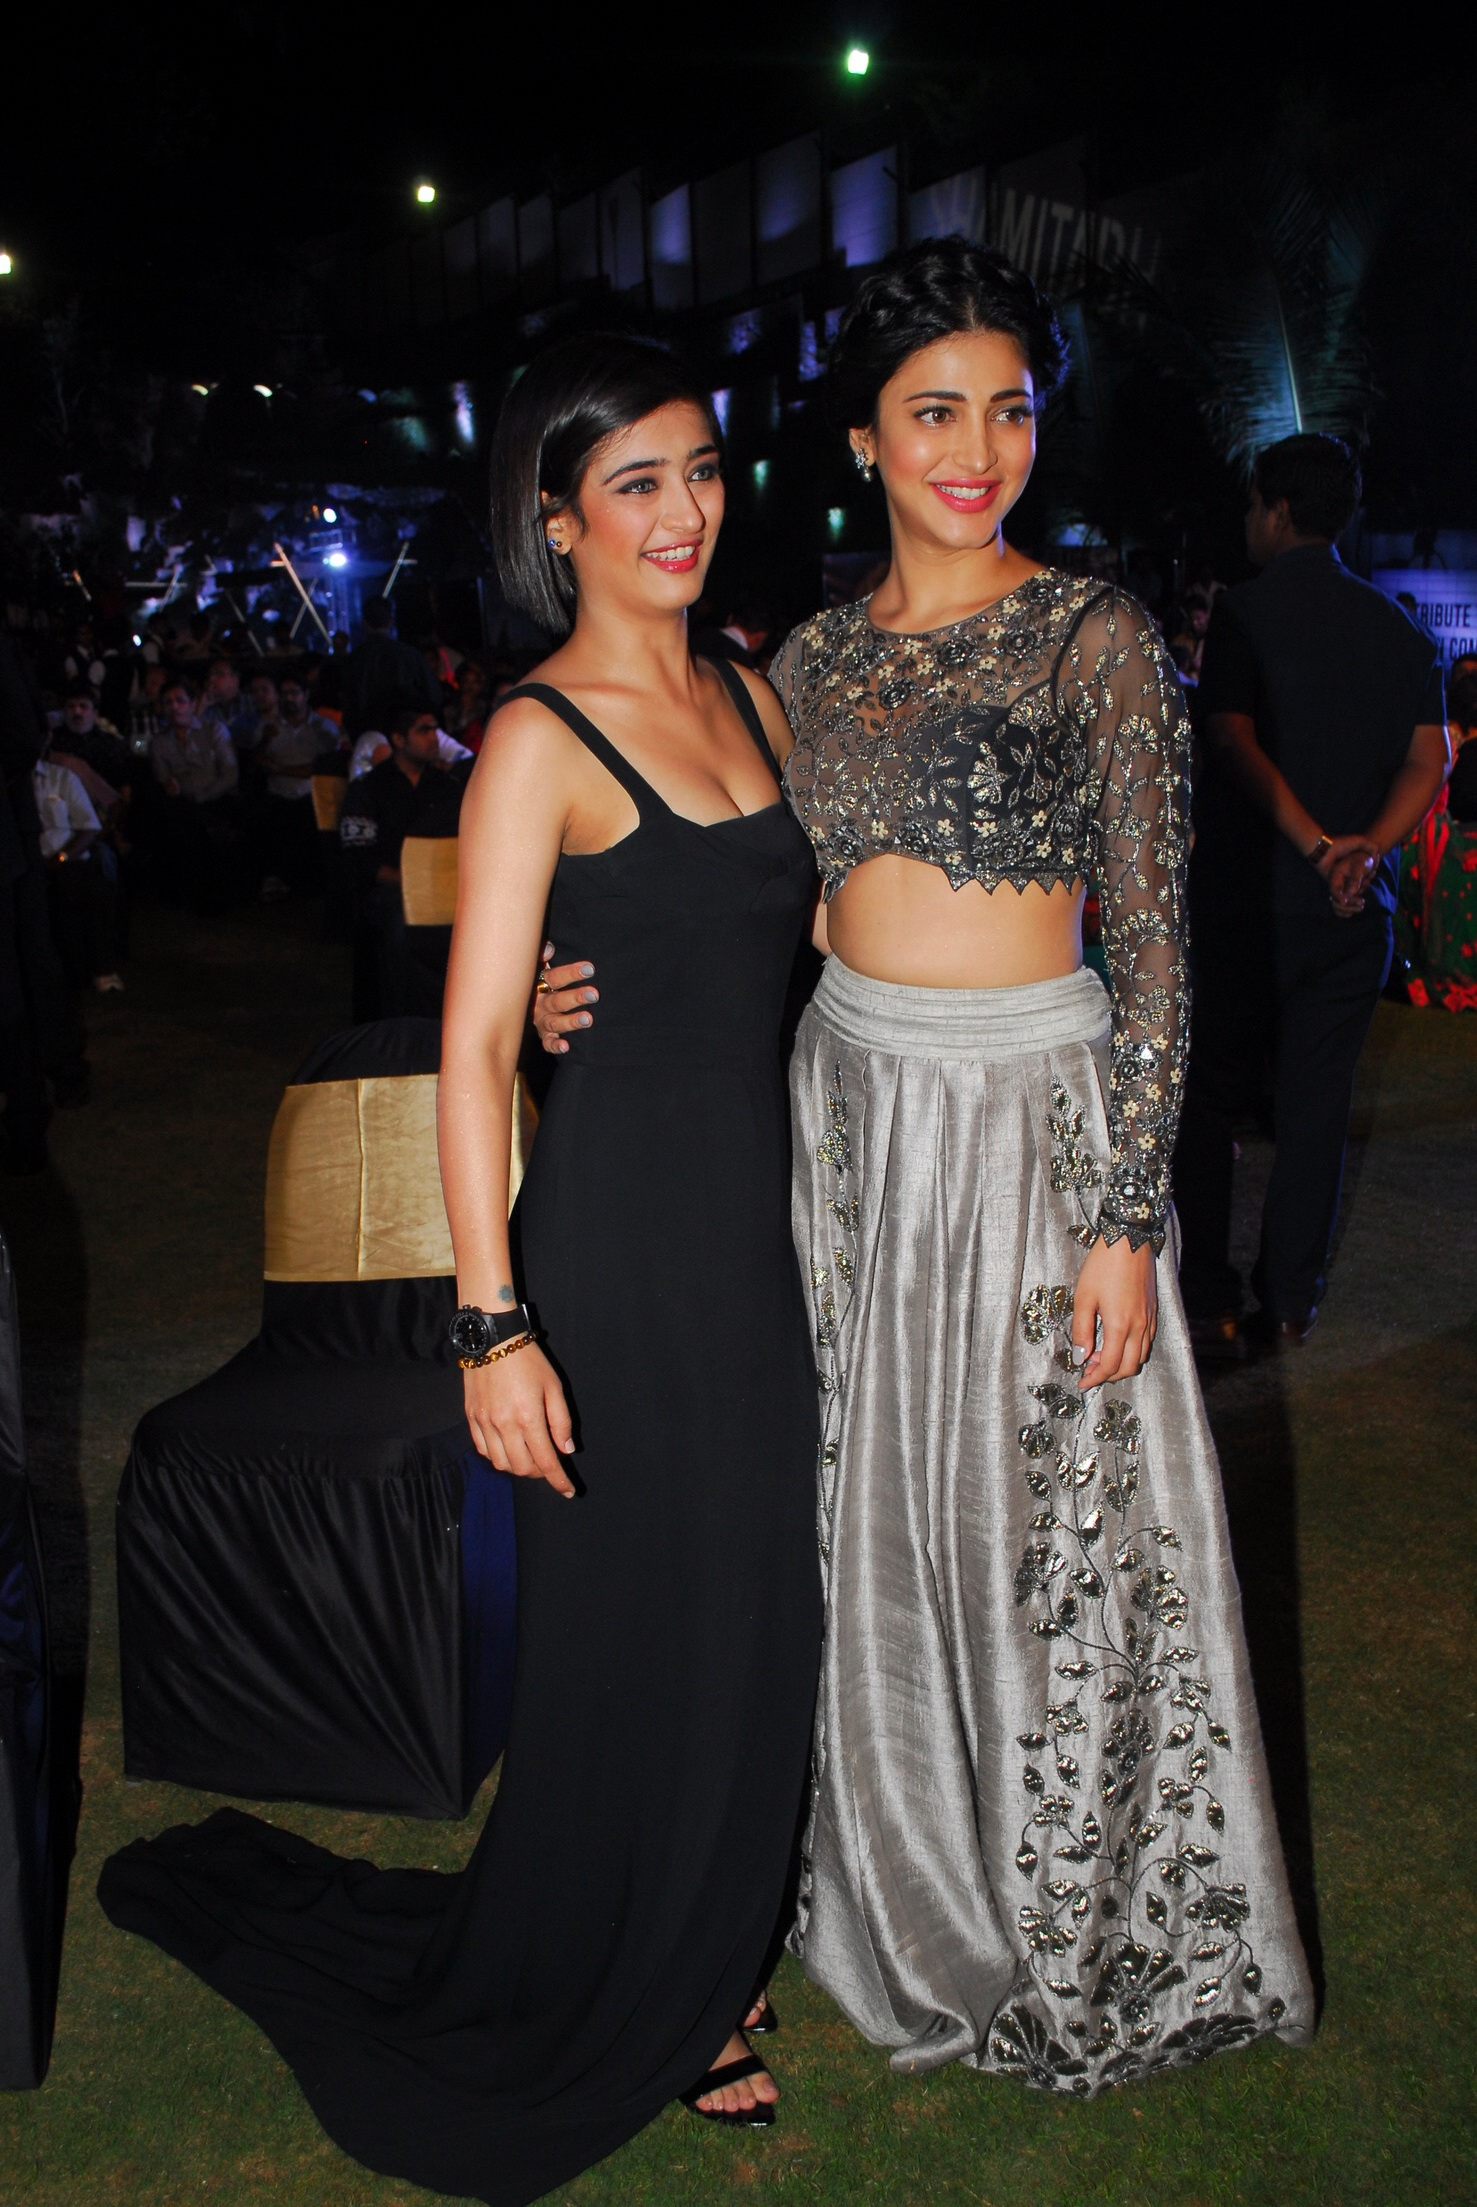 11. Shruti and Akshara Hassan